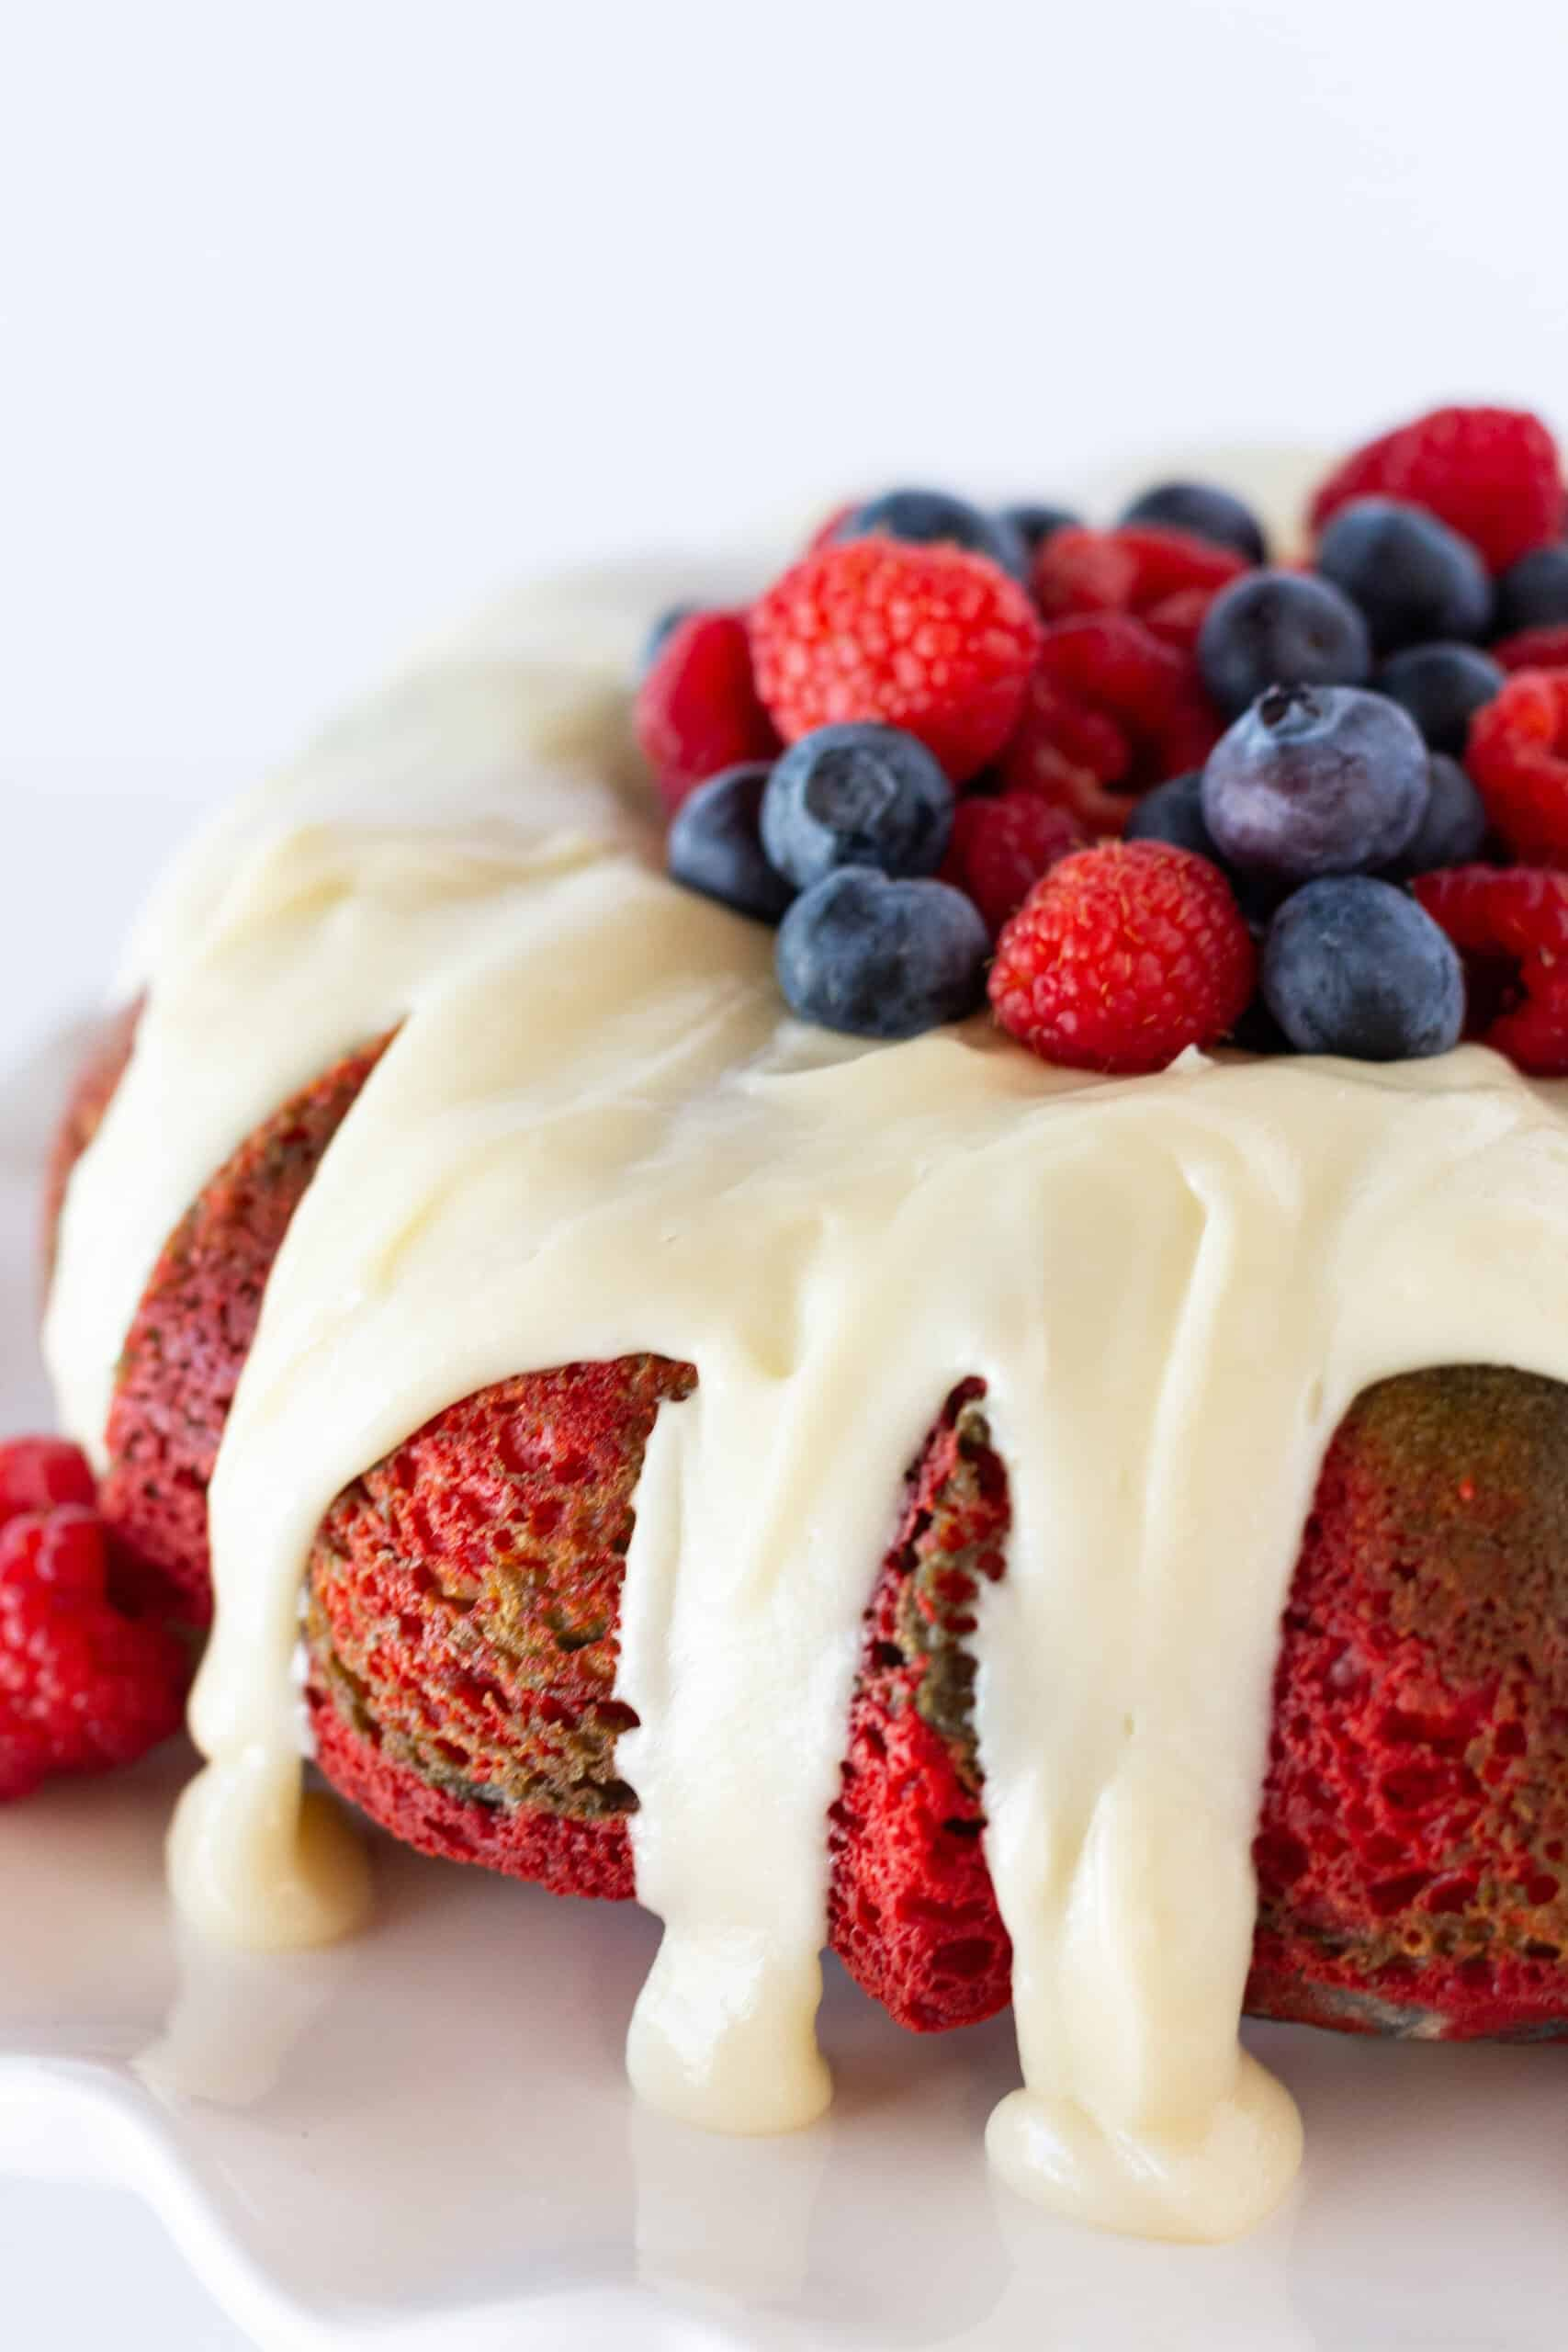 Red White and Blue Velvet Bundt Cake Recipe with a Cake Mix, an Easy 4th of July Dessert Idea featured by top US dessert blogger, Practically Homemade